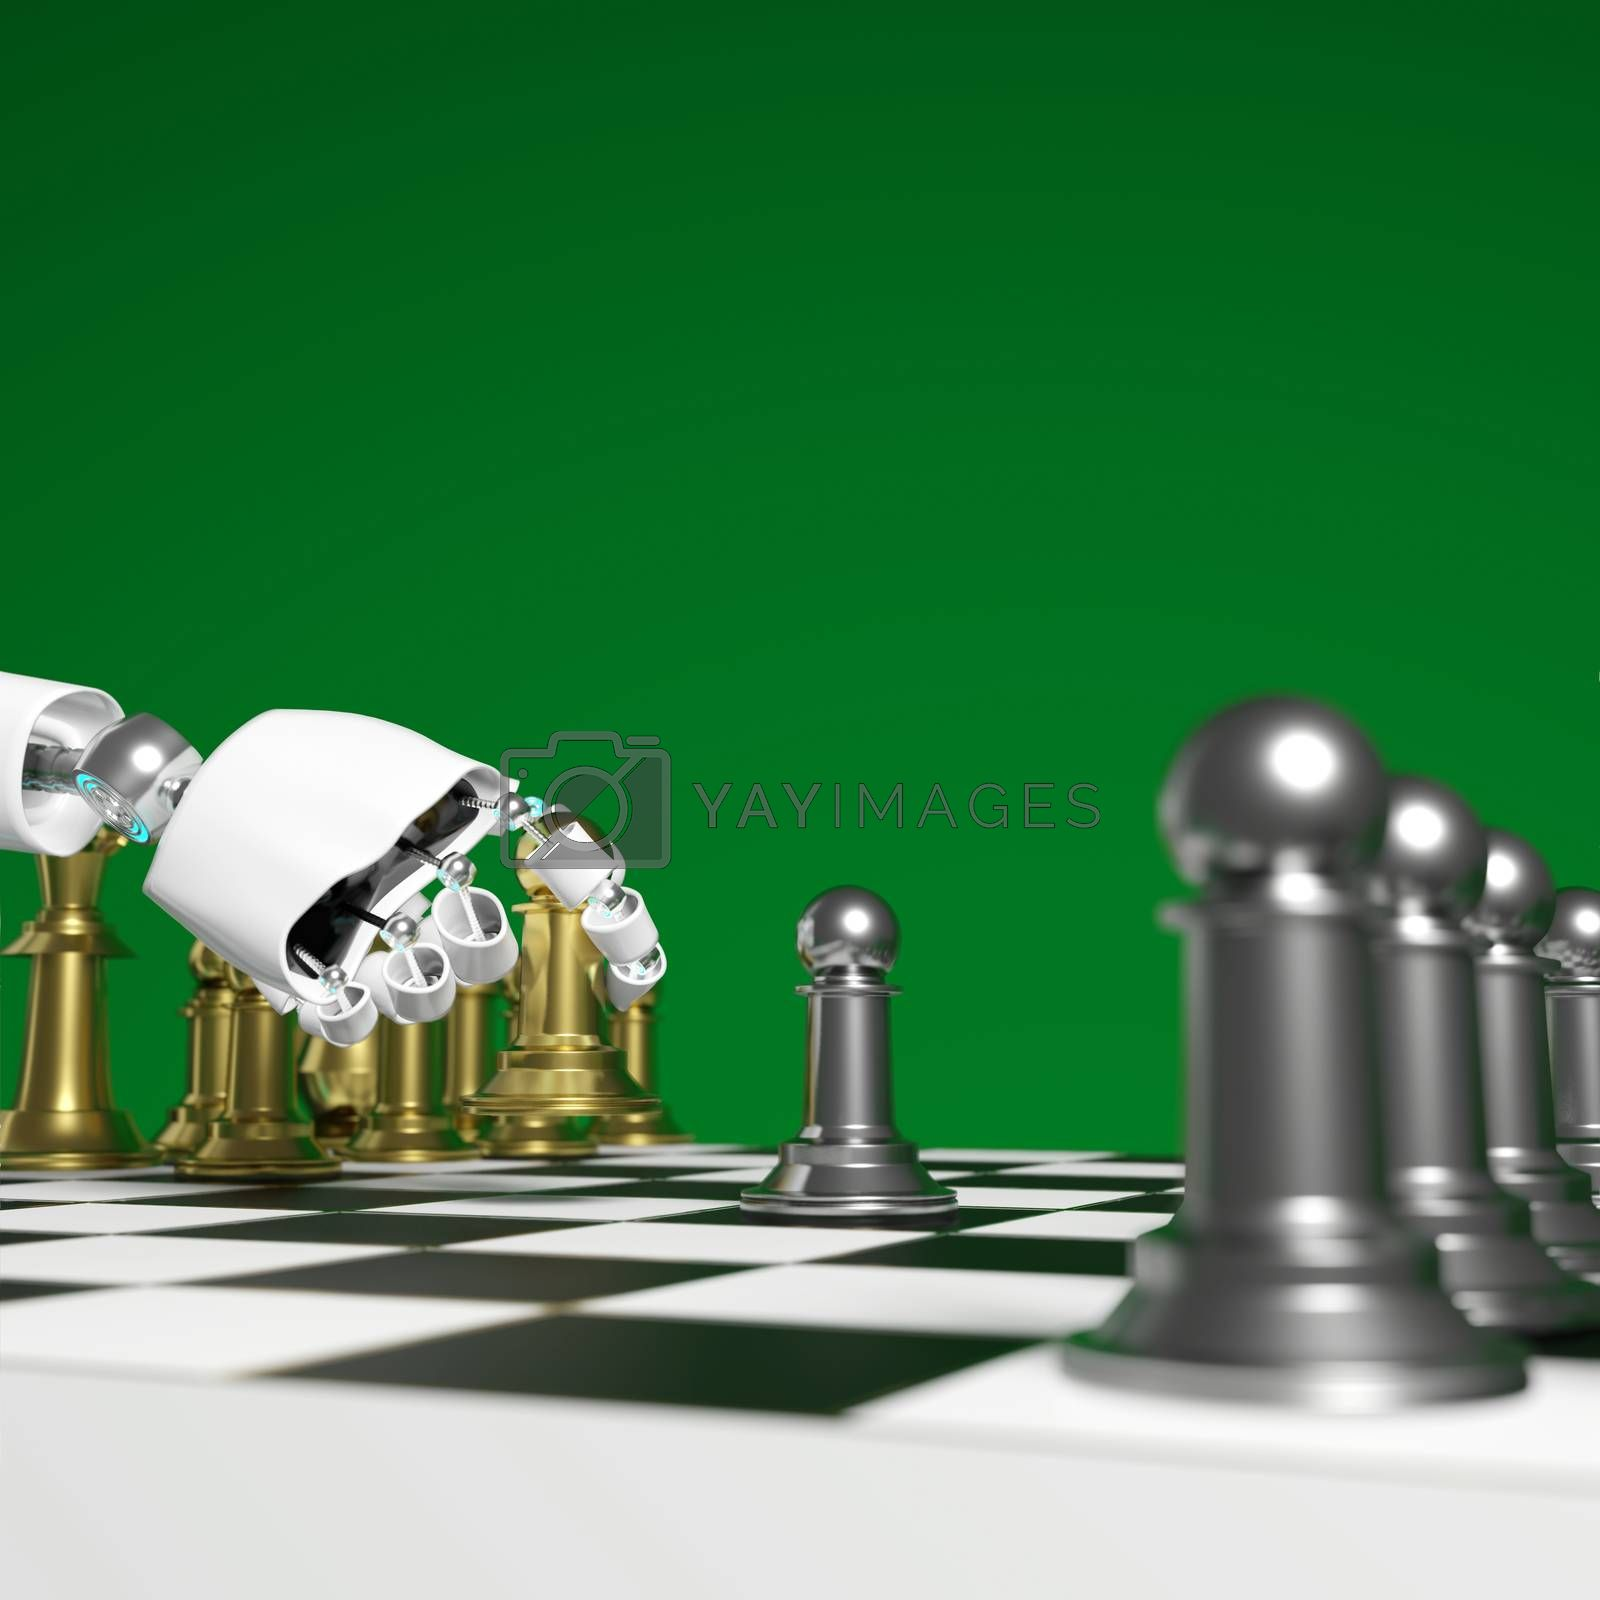 Royalty free image of Hand of android pick golden pawn is deciding play chess by eaglesky